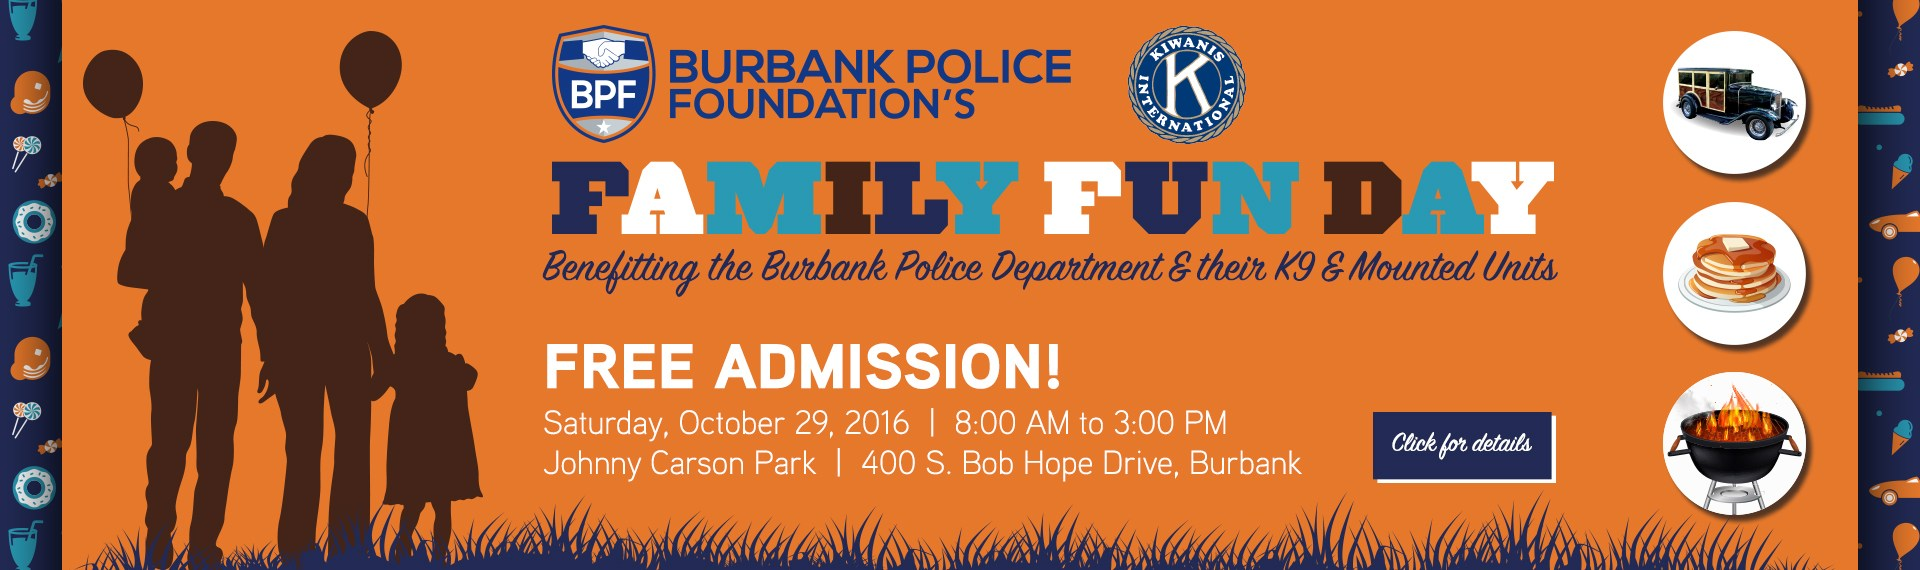 Burbank Police Foundation Family Fun Day - Oct 29